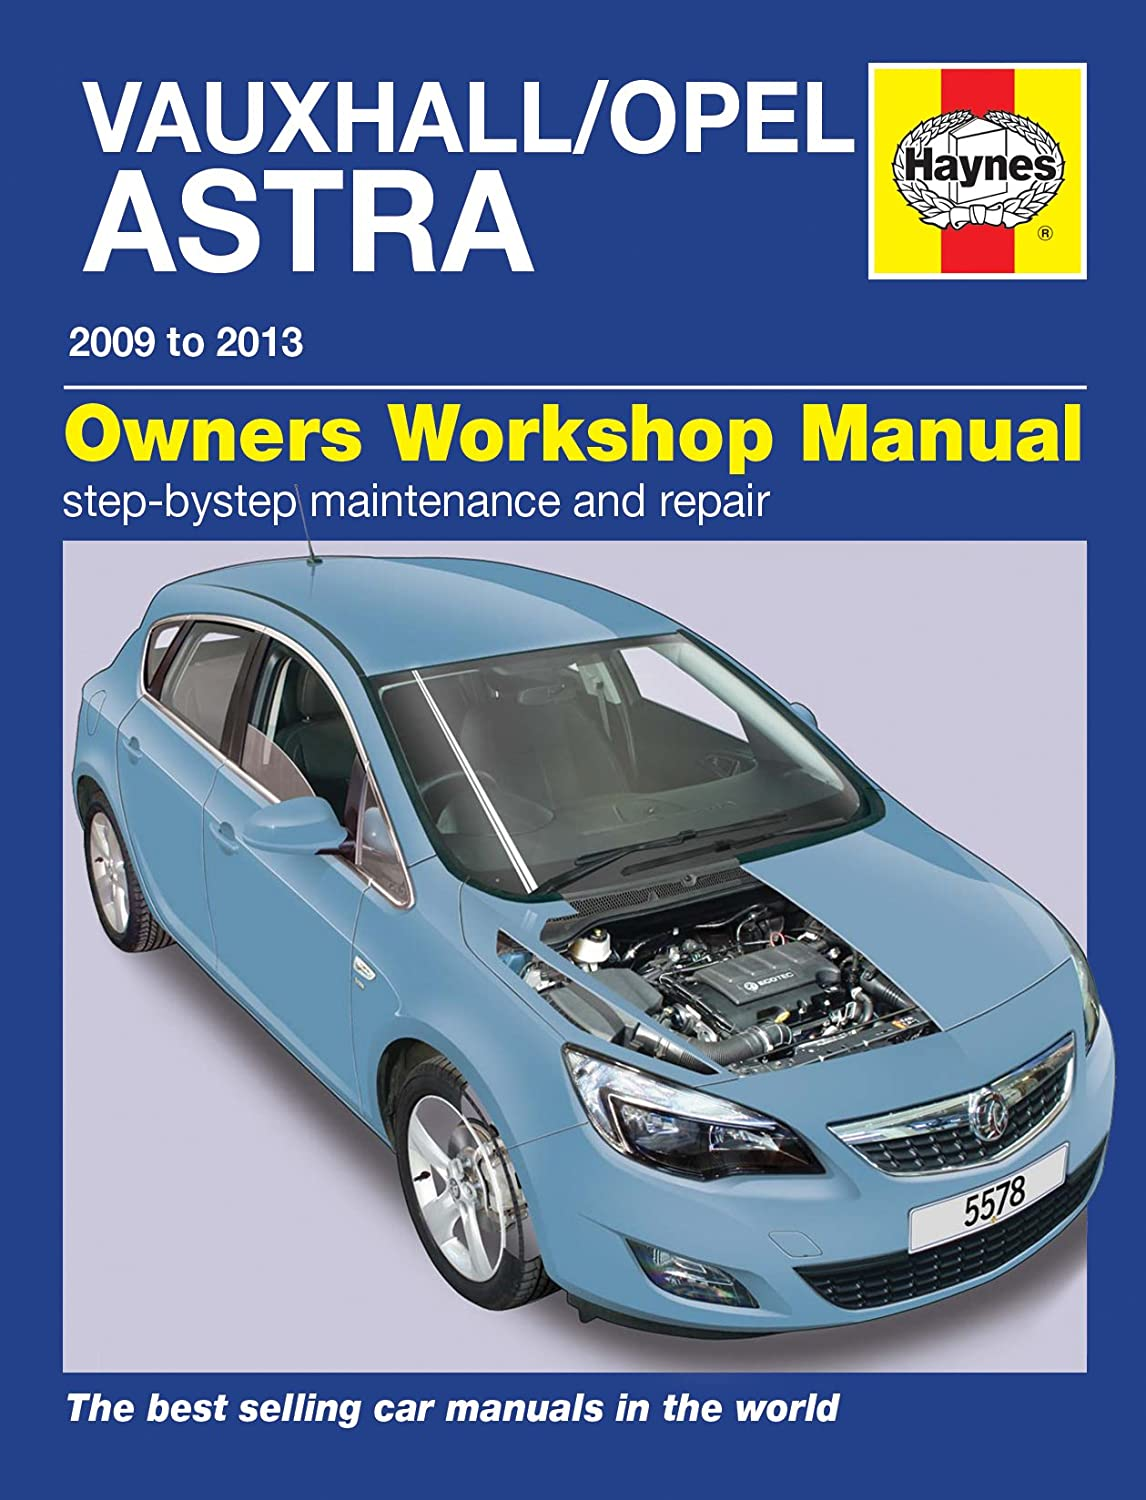 2001 vauxhall vectra owners manual sample user manual u2022 rh userguideme today vauxhall zafira owners manual 2001 Vauxhall Corsa